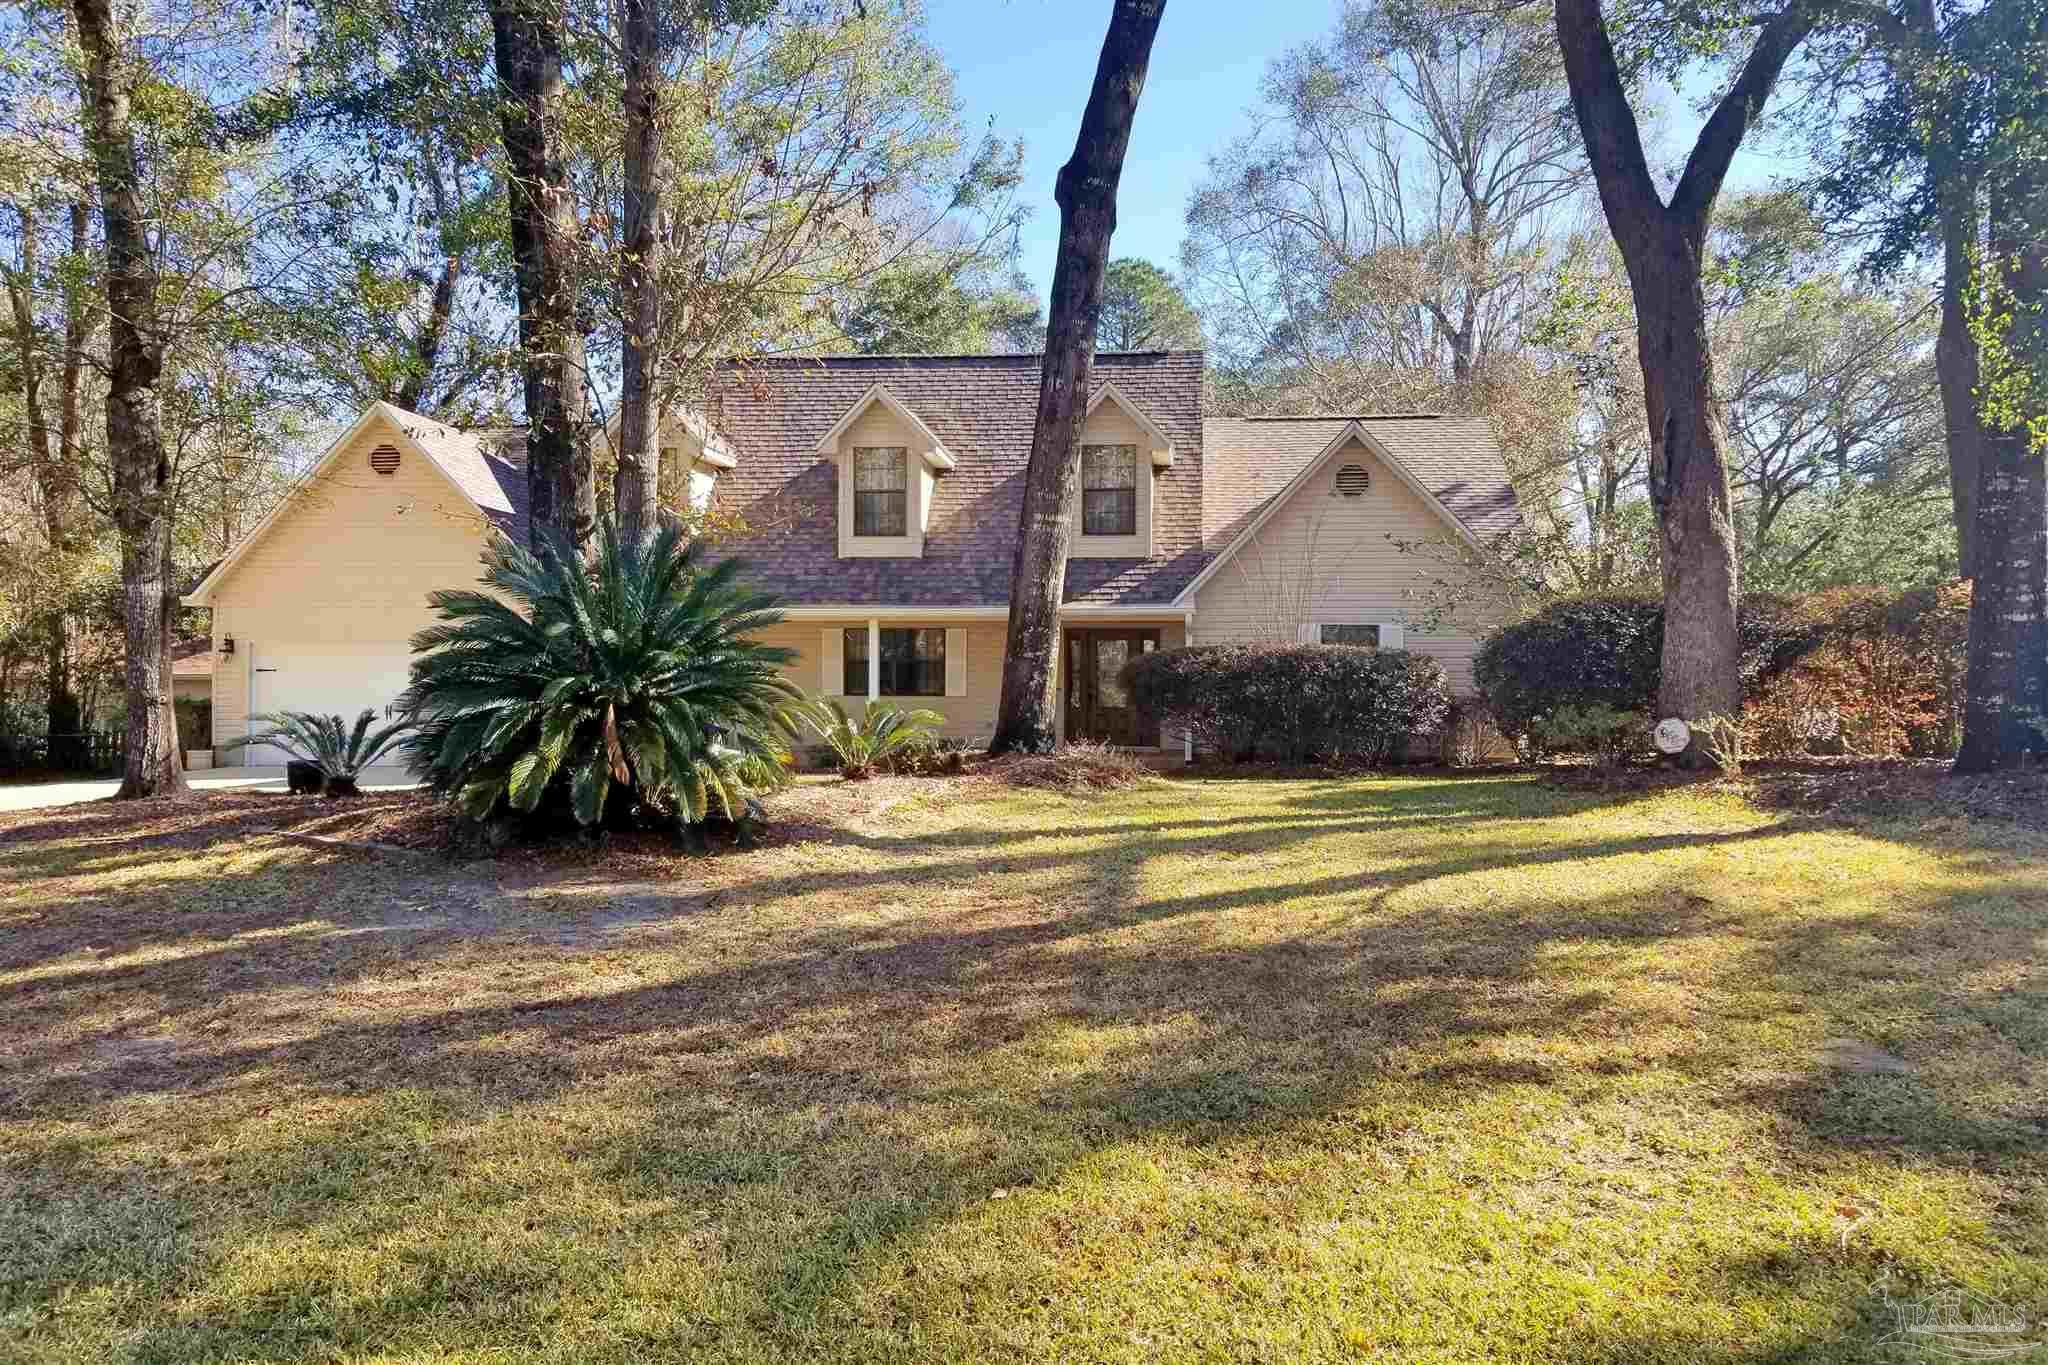 "This Estate Sized Property (approx 1.12 acre) is located along a creek and wooded area that can never be built on! This end of Sonya St is quiet and one of the communities most desired locations. Sales there are rare with very low turnover! Woodbine Springs is our areas only true ""PRIVATE"" Lake Community with great fishing, kayaking and non-motorized boating.  An Extremely well maintained home has been prepared for its new owner, is nicely landscaped with a detached 15x22 Up Scale Man Cave/Storage Building. Supersized Kitchen and large family room, offer a great opportunity for a growing family! Hardwood Floors and or Ceramic in most main areas, and the Master, and Brand New Carpet Upstairs. The  garage has an additional work area, to match one of the largest Laundry rooms you'll ever find in a home in this area.  Are you looking for storage; 2 separate areas accessed through a real door, will exceed your expectations.  There are dual HVAC systems for up and downstairs, all replaced in 2016. This property rests on 2 separate lots that are being being sold as a package deal only! Roof replaced 21014, Owen Corning Designer Series, No insurance roof issues here!!"